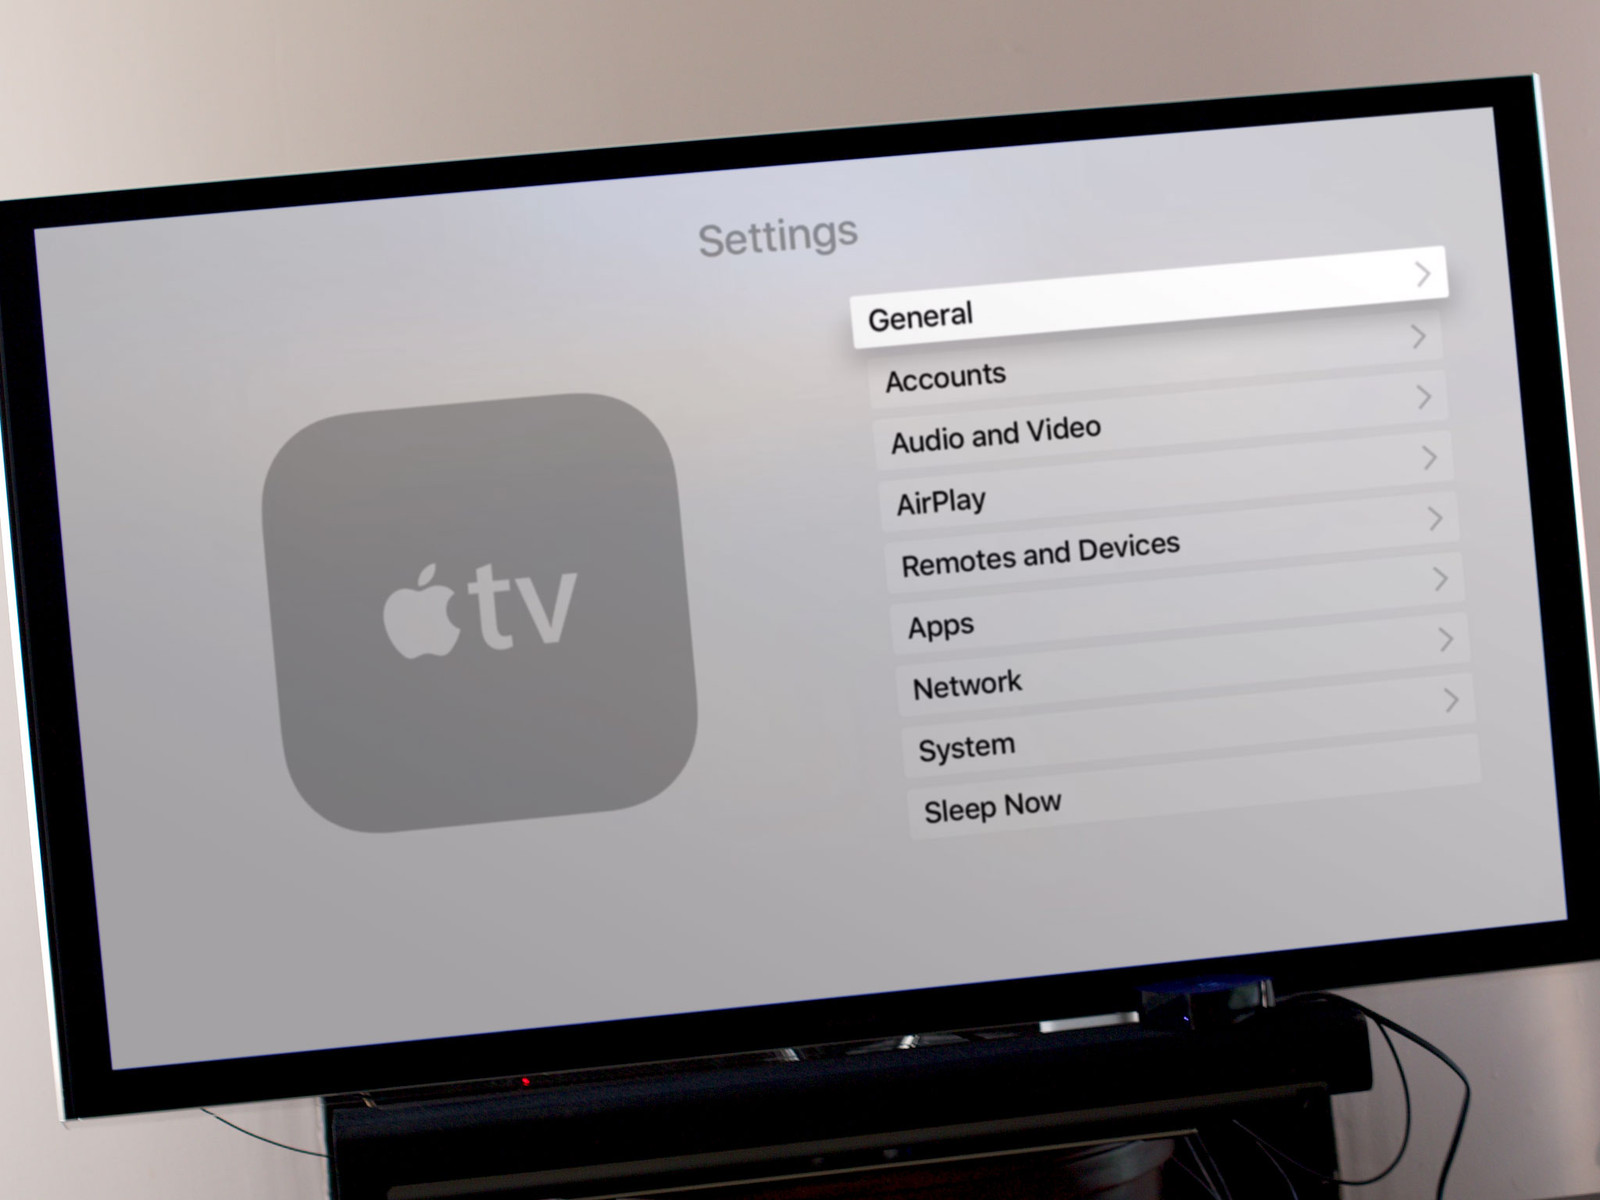 How to rename fourth and third Apple TV